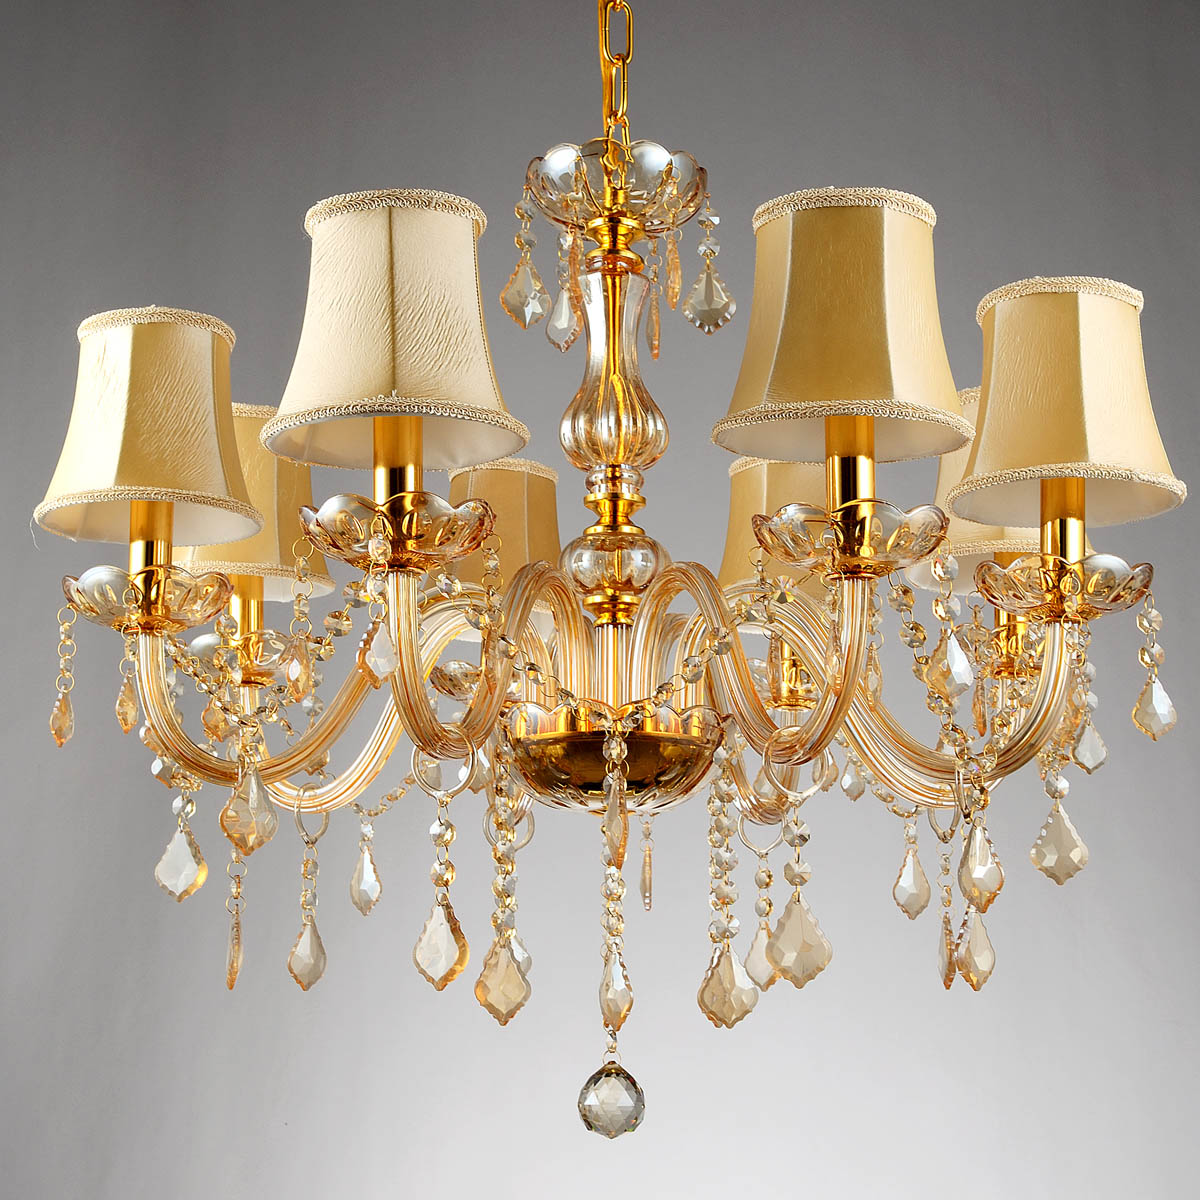 Modern silvergold transparent cognic crystal chandelier lustres de free ship 68 arms fashion crystal chandelier lighting bedroom pendant chandelier champagne color gold aloadofball Choice Image